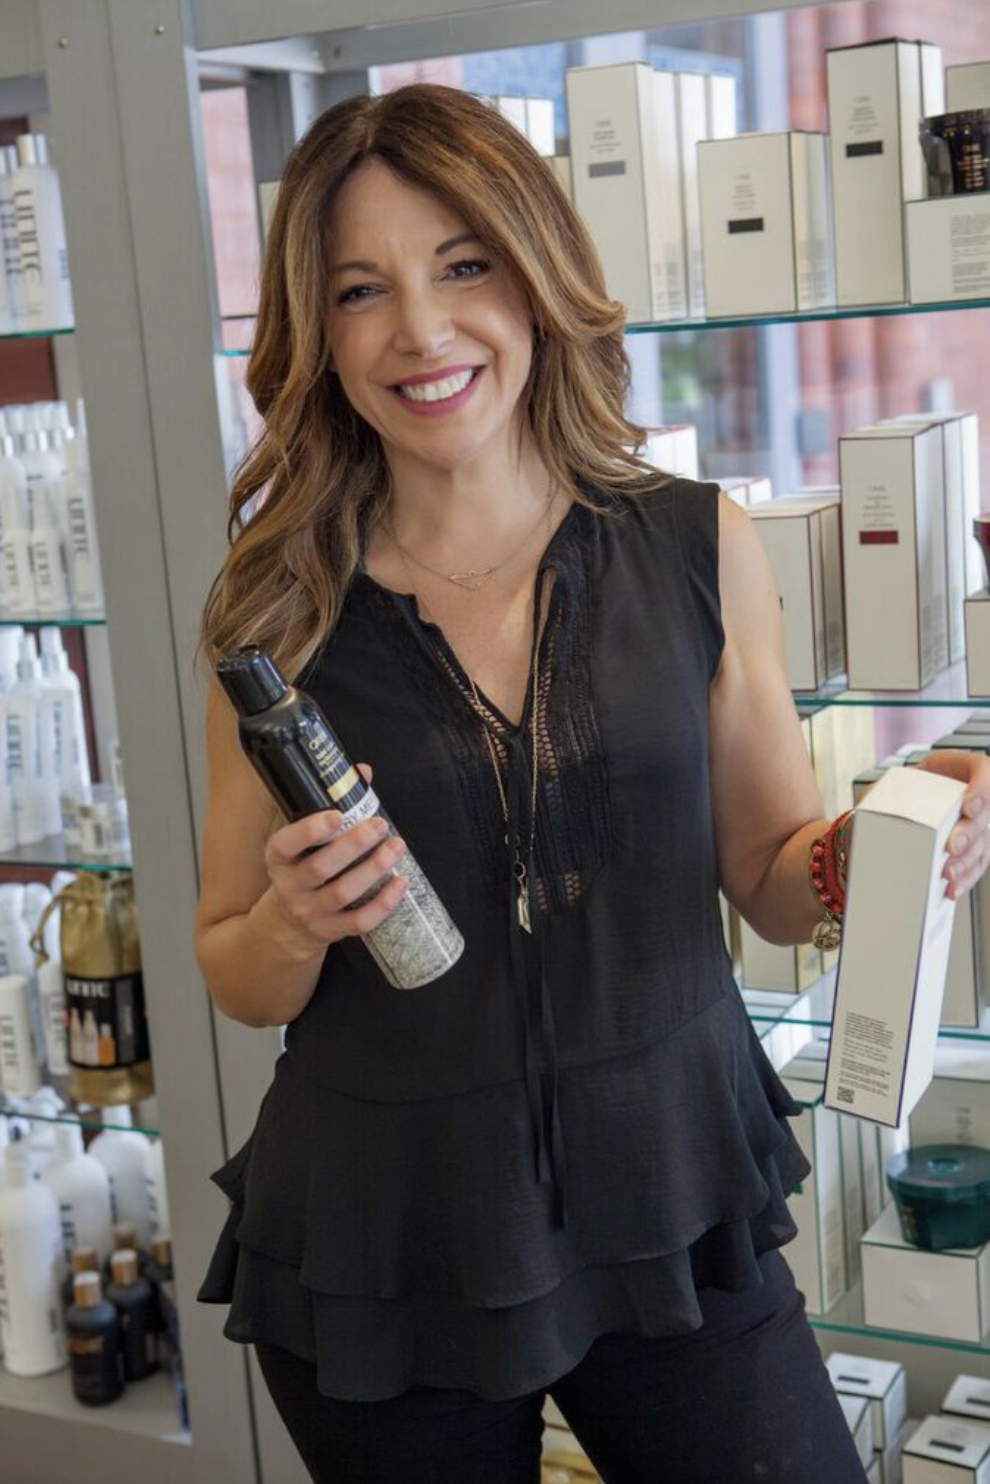 Lisa A. - Specializes in:Hair Color, Hair Extensions/Weaves, Thick, Coarse Textures, Natural looking sun kissed hair, Balayage